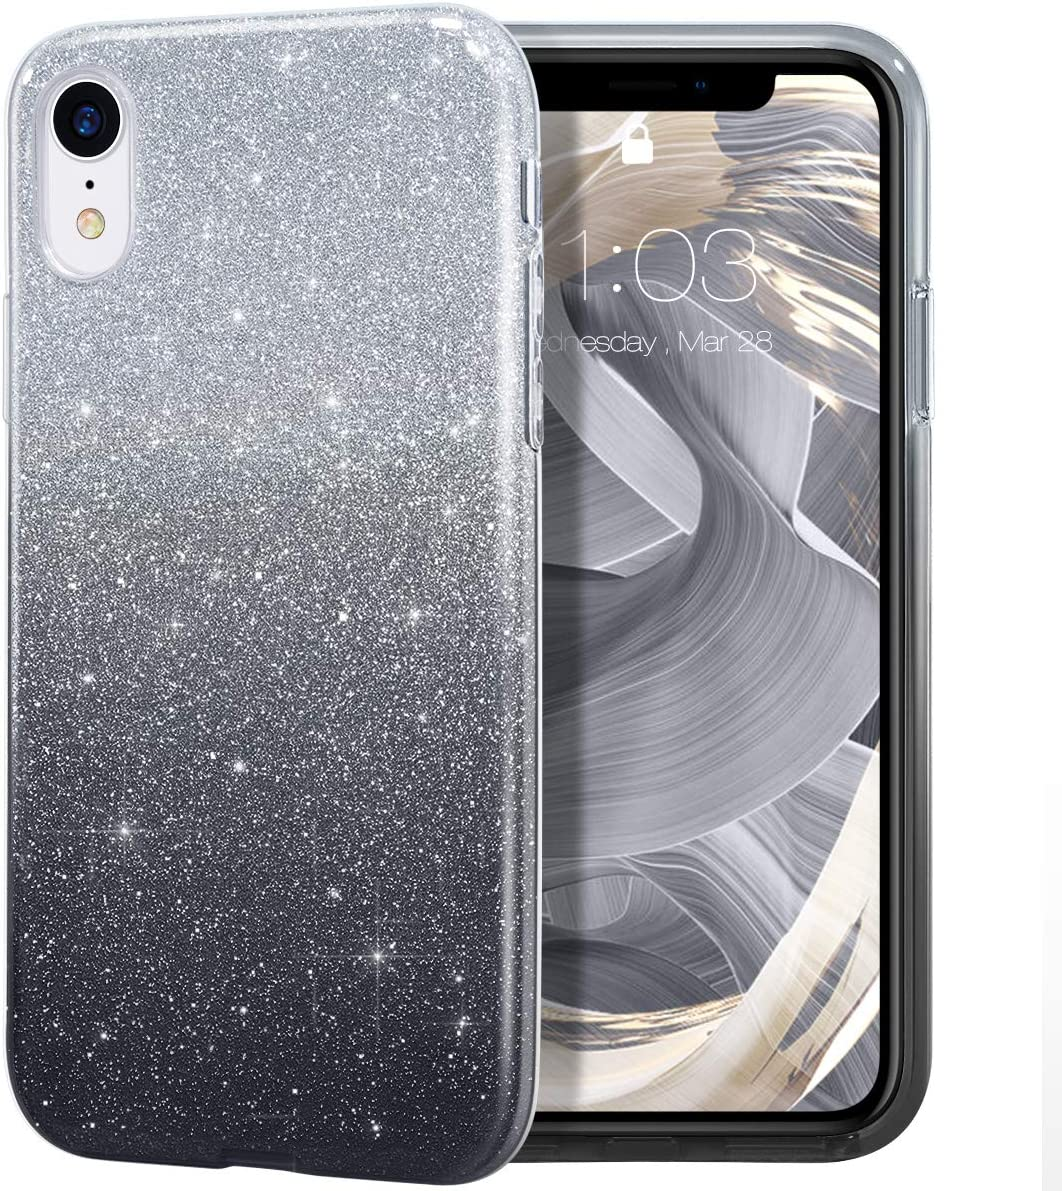 "MILPROX Glitter case for iPhone XR 6.1"", Shiny Sparkle Bling, 3 Layer Hybrid Protective Soft Case- (Black Gradient)"